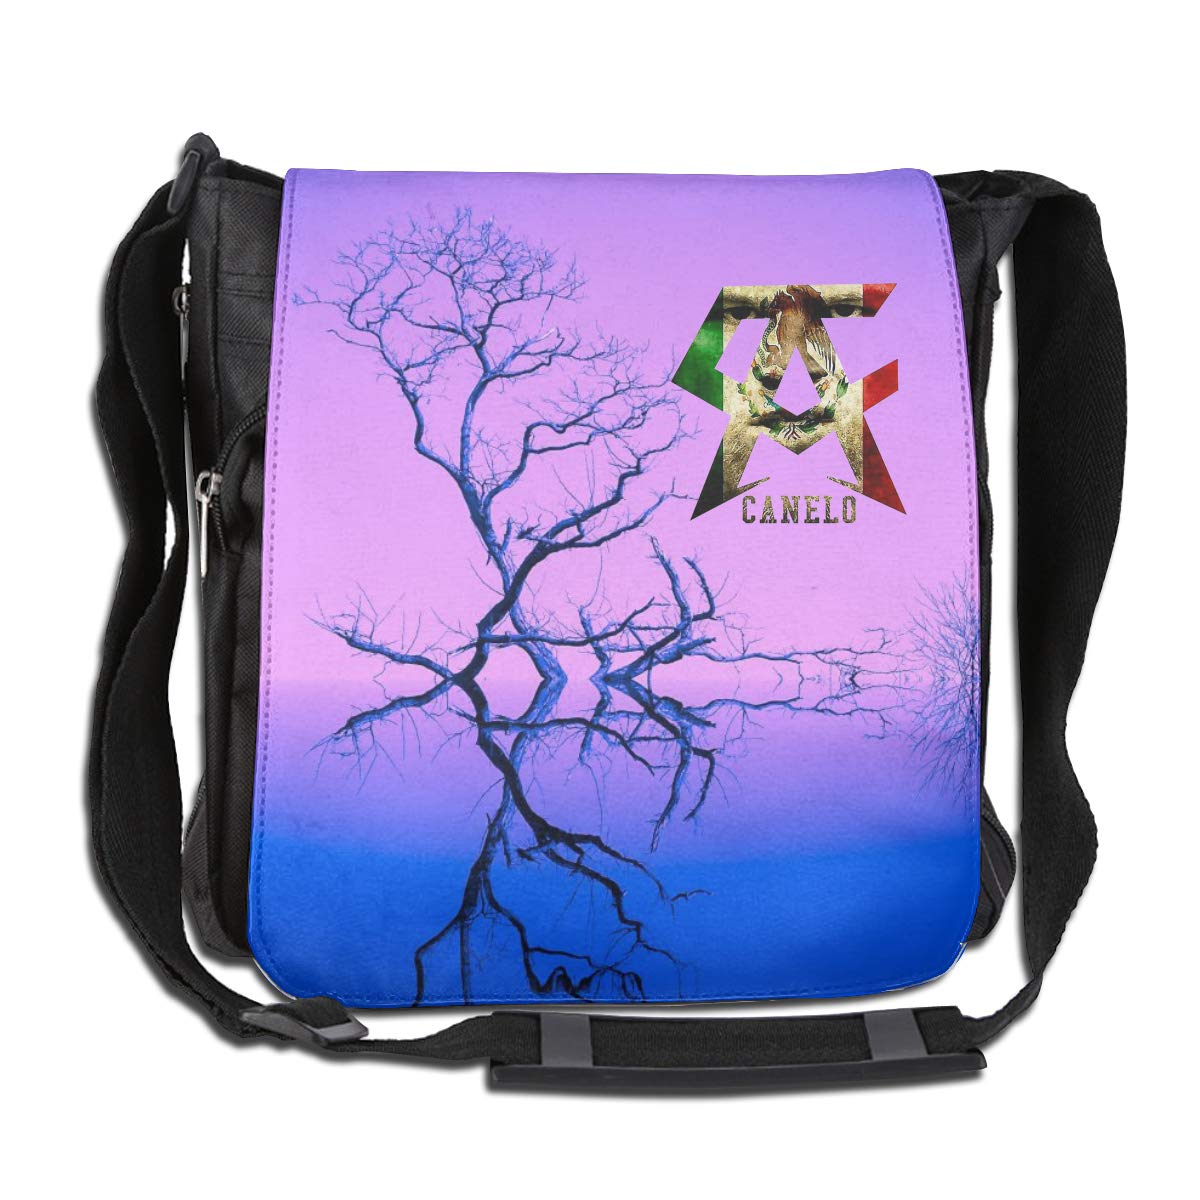 Canelo /Ãlvarez CANELO Shoulder Bag For All-Purpose Use Messenger Bag